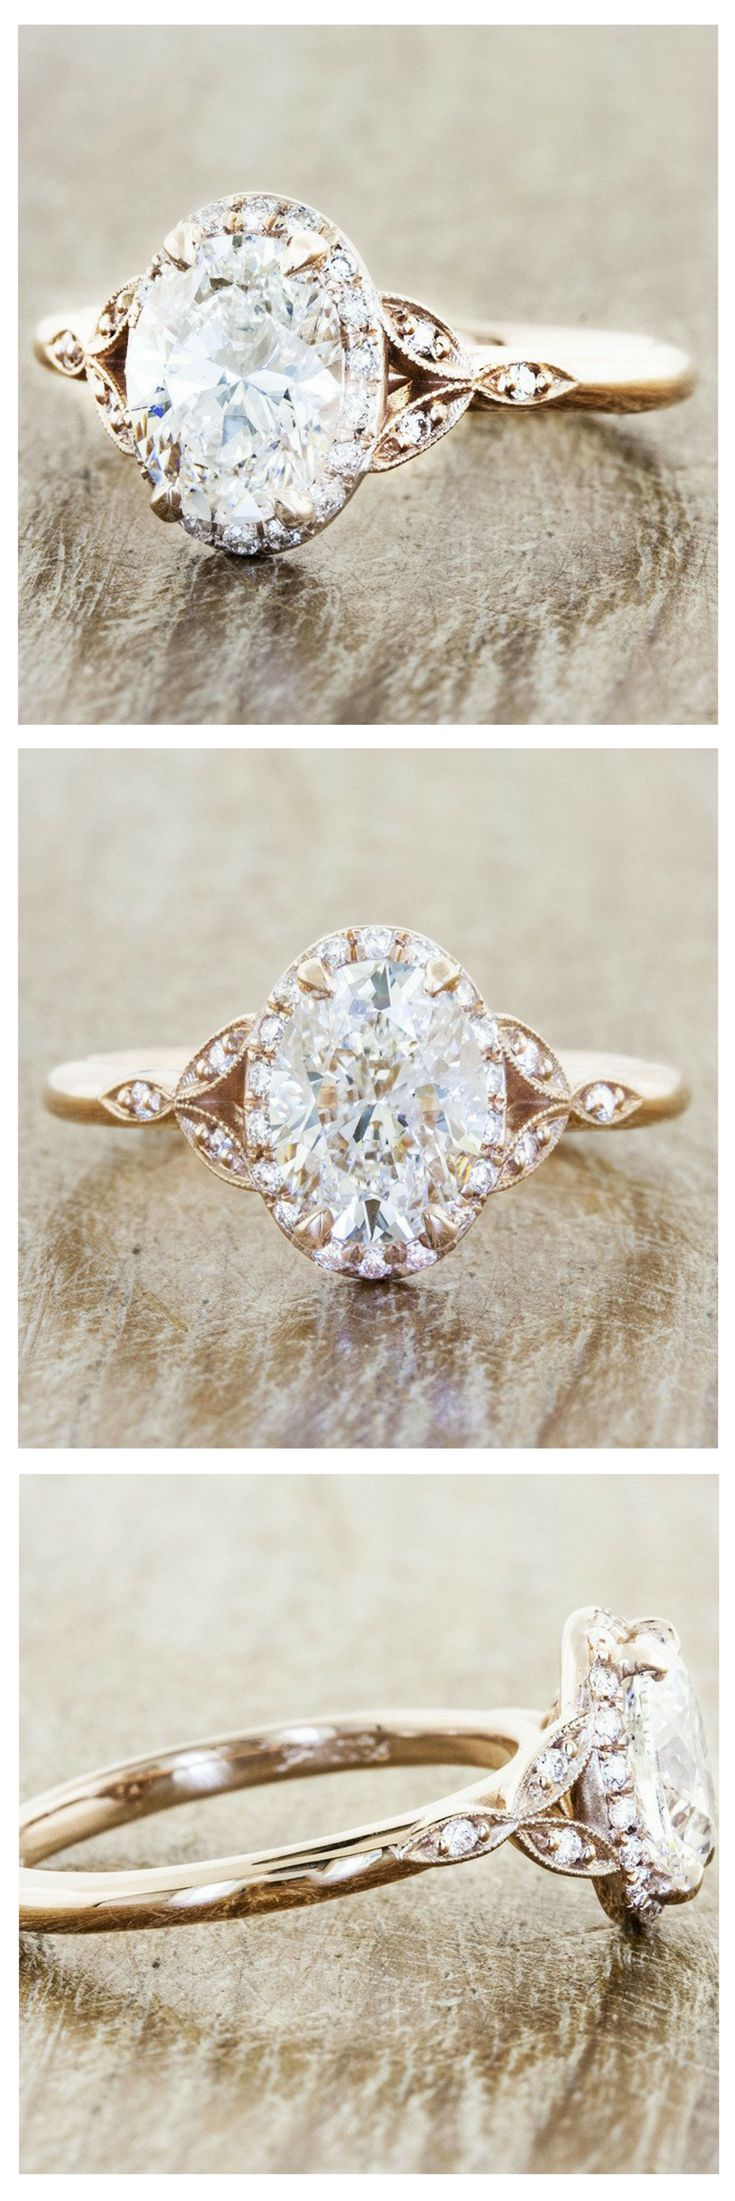 The Rachael is a custom engagement ring crafted with a brilliant, conflict-free oval cut diamond wrapped in a rose gold brand. by Ken & Dana Design. #diamond #ring #engagementring